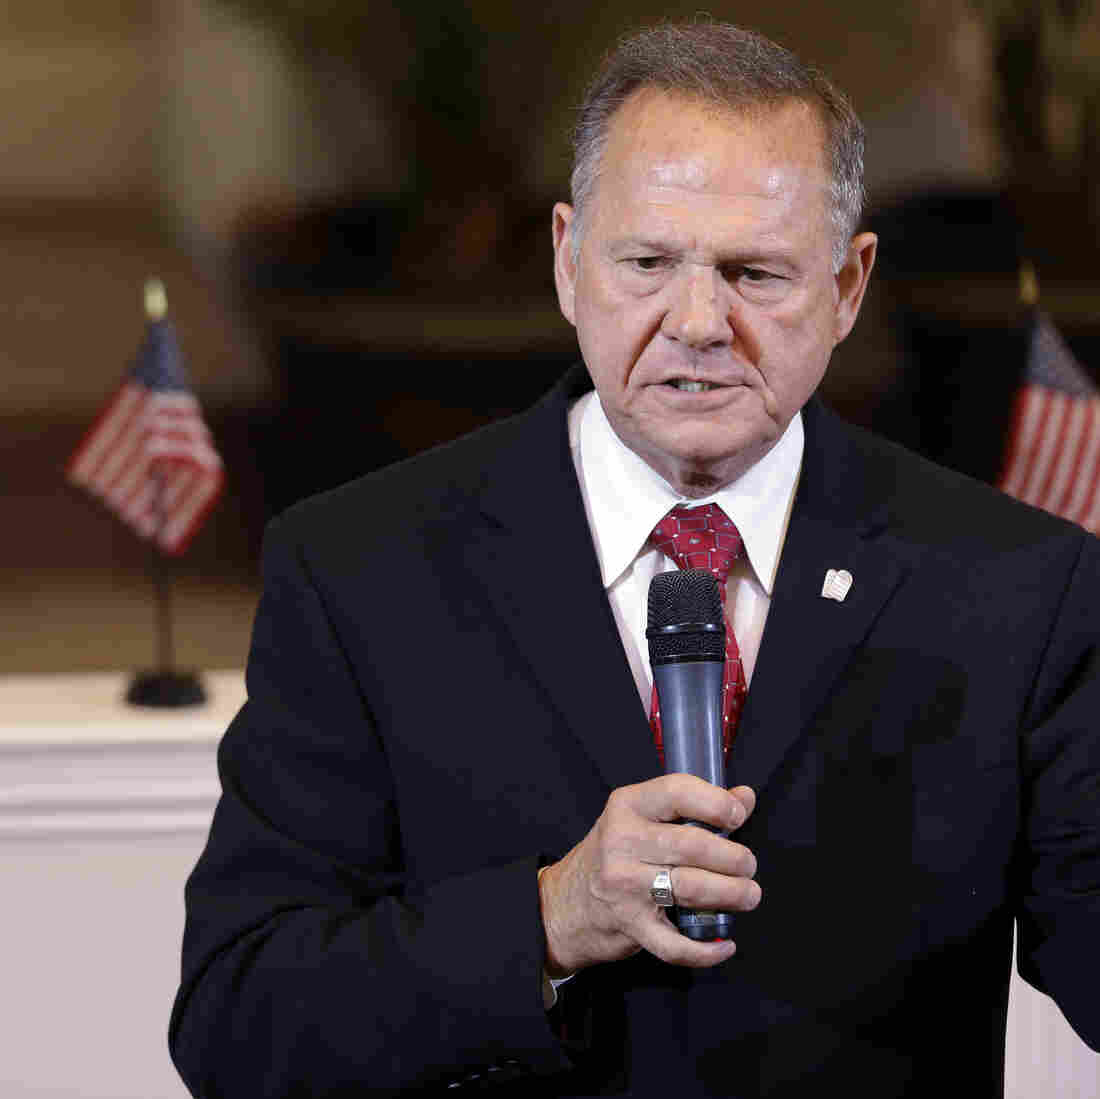 Alabama Chief Justice Orders Judges To Enforce Ban On Same-Sex Marriage